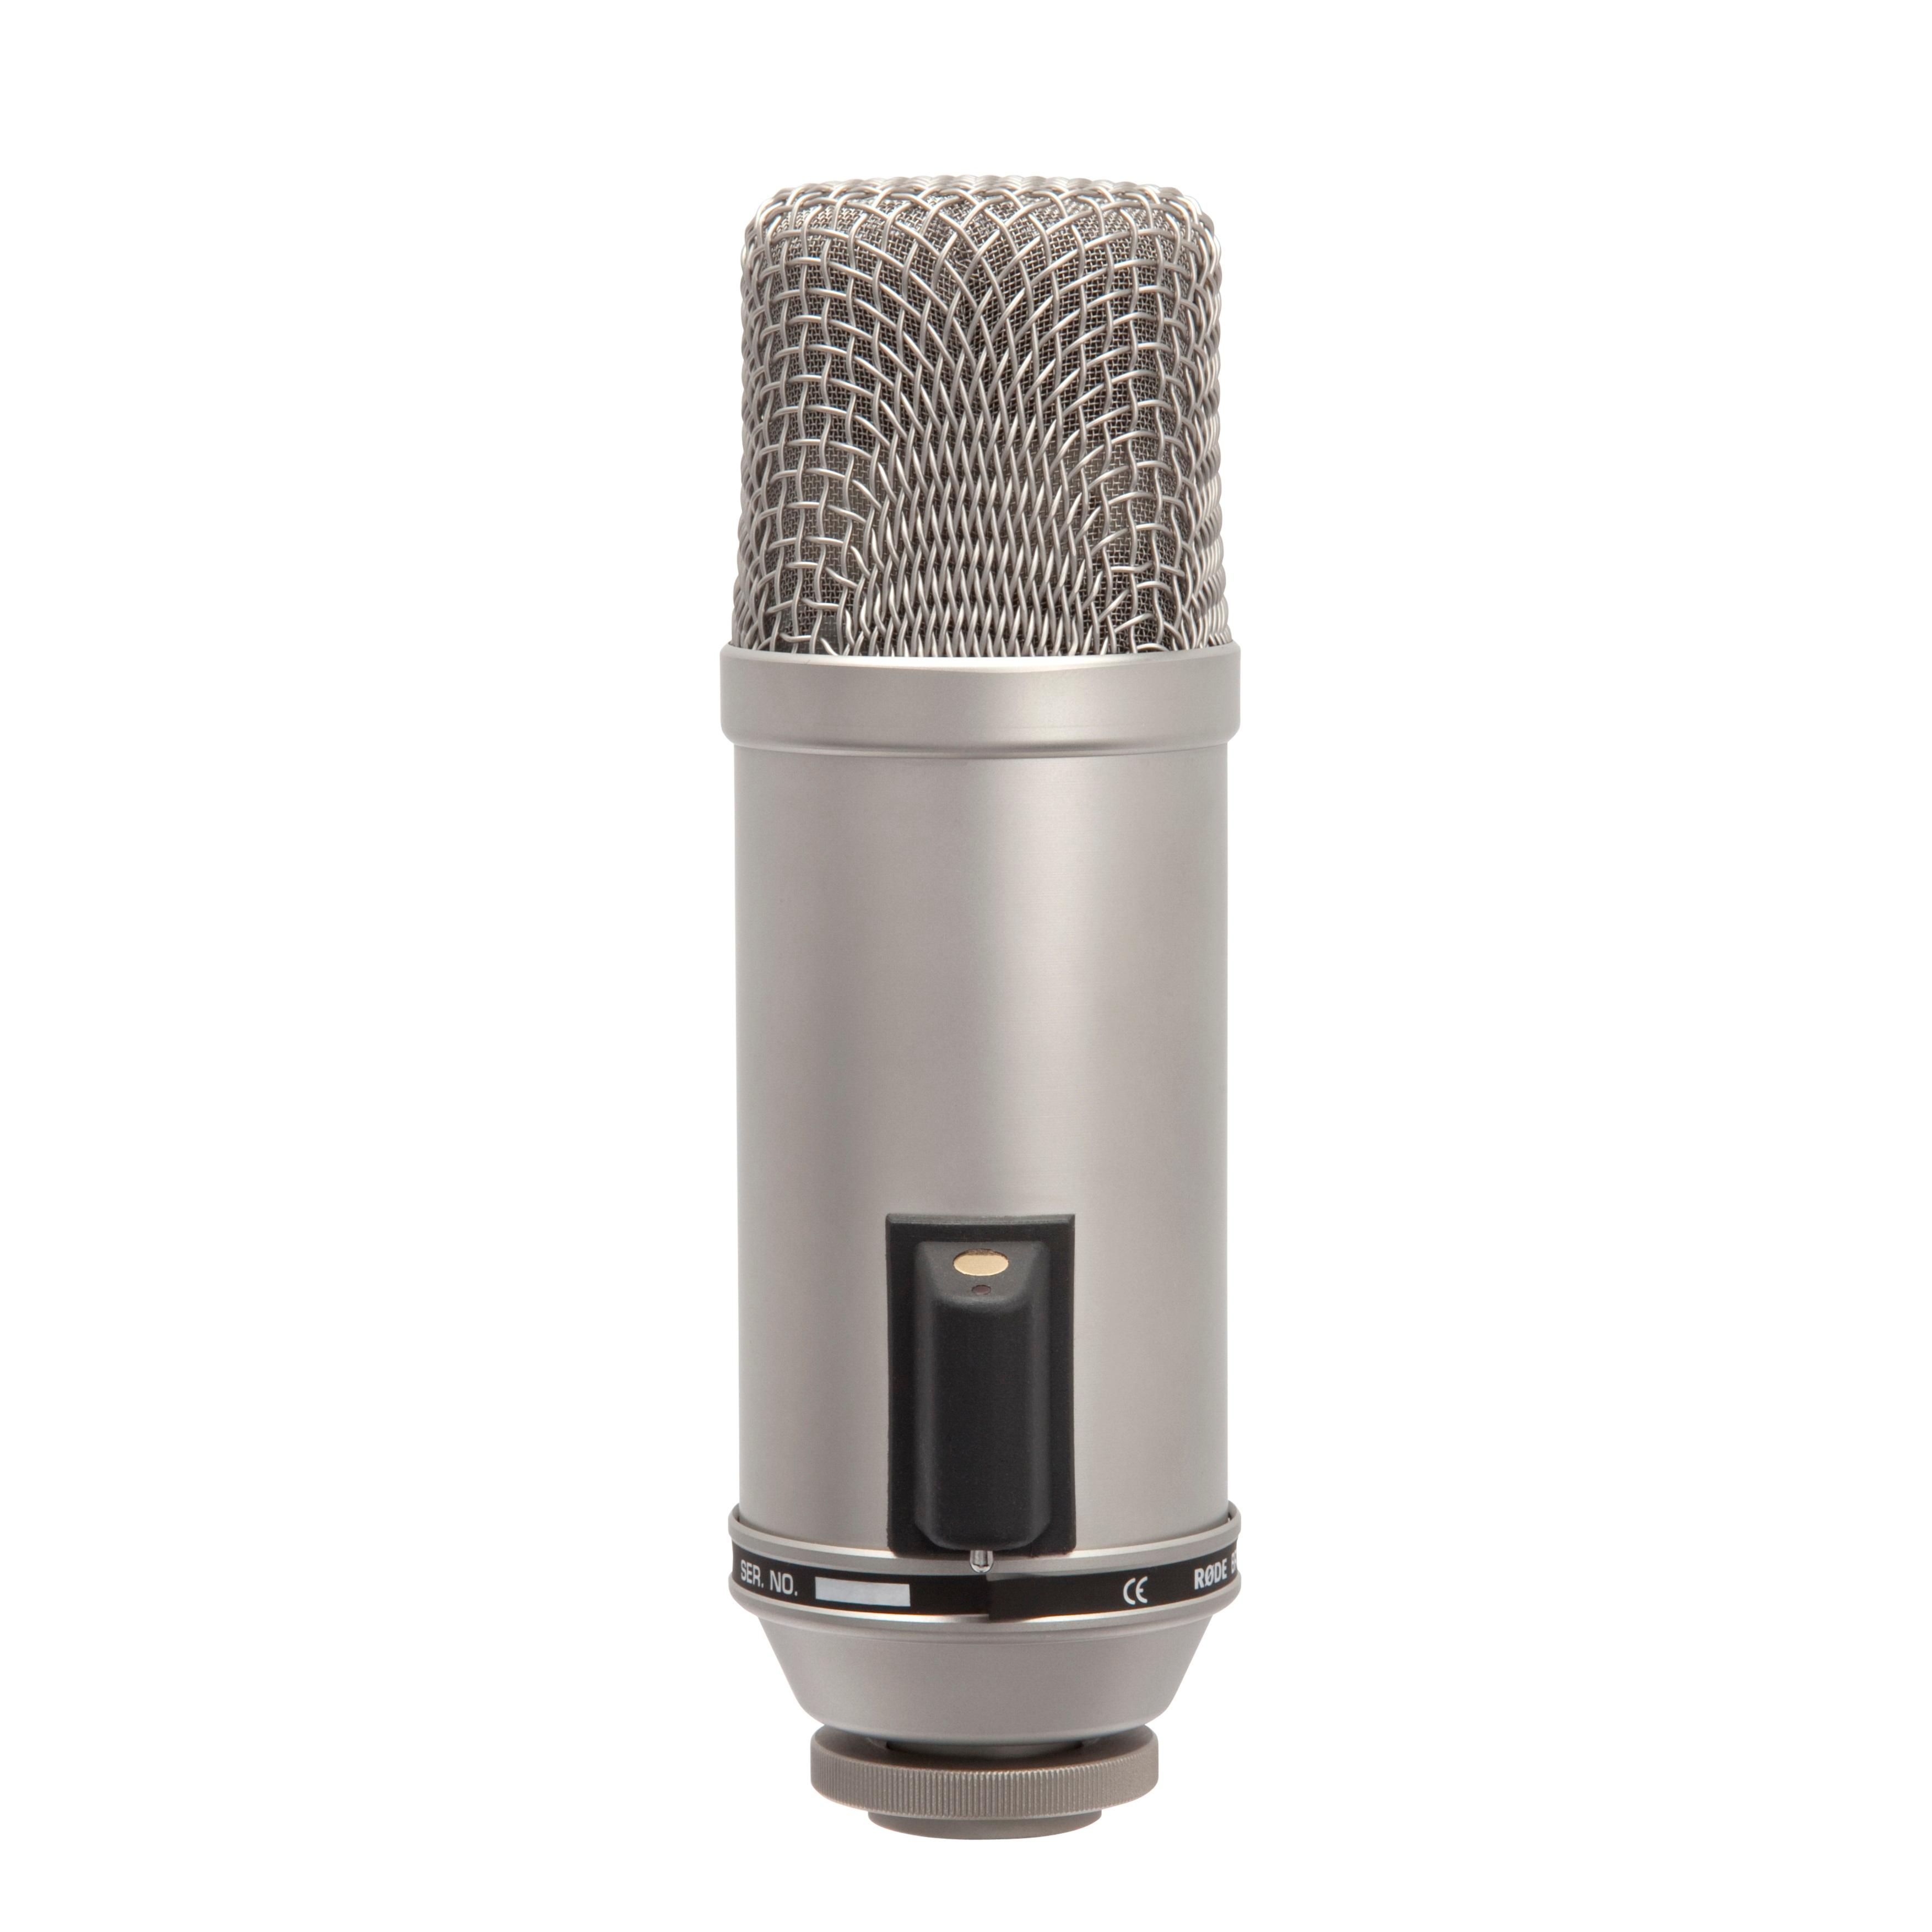 Amazon.com: Rode Broadcaster Studio Condenser Microphone: Musical